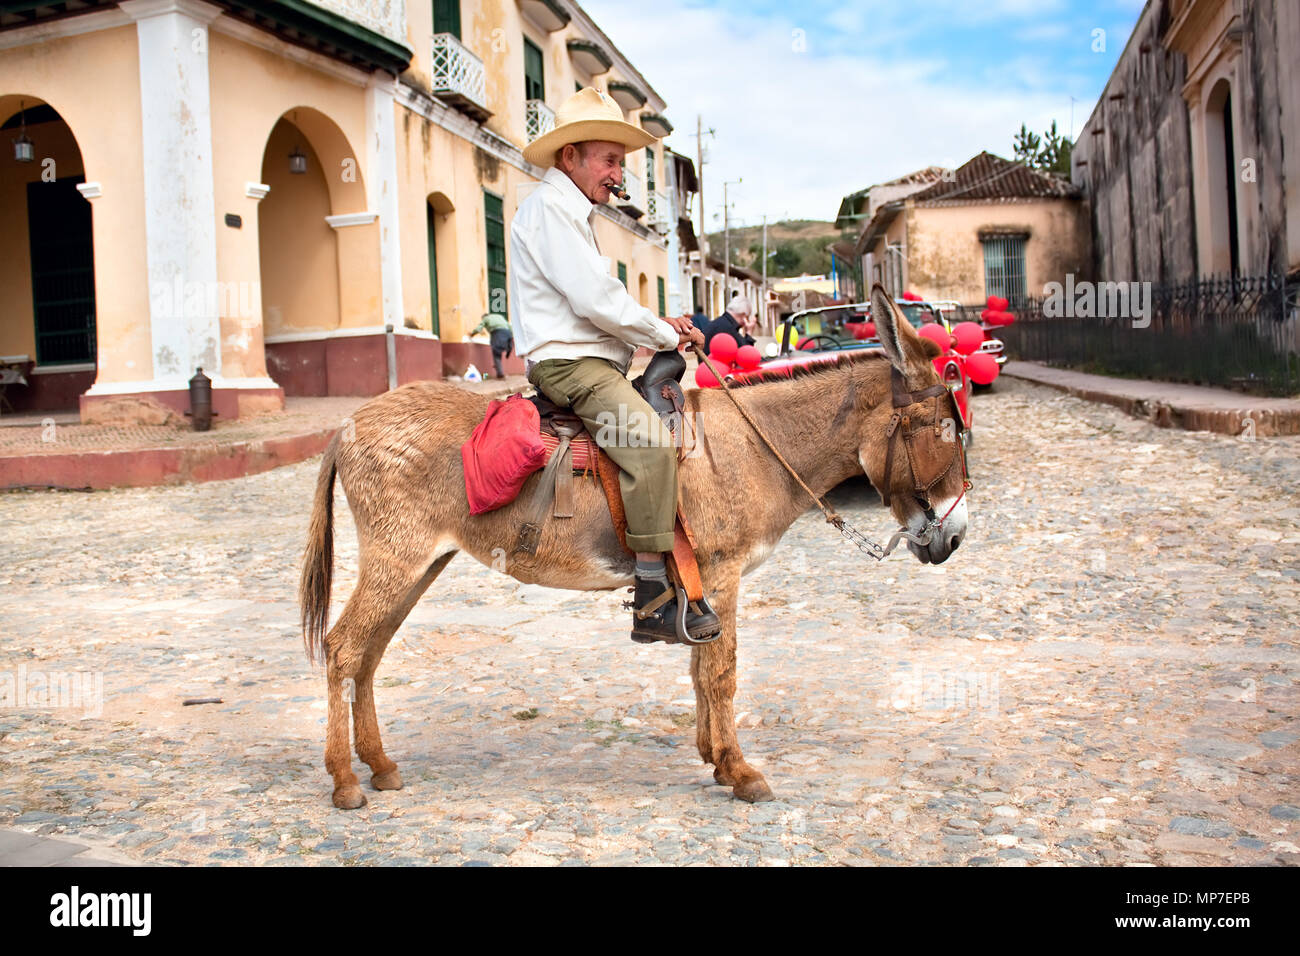 TRINIDAD CUBA, 14 JANUARY: Old men with cigar and donkey for rent in the street of colonial town Trinidad. Working in tourism is the only way cuban pe Stock Photo